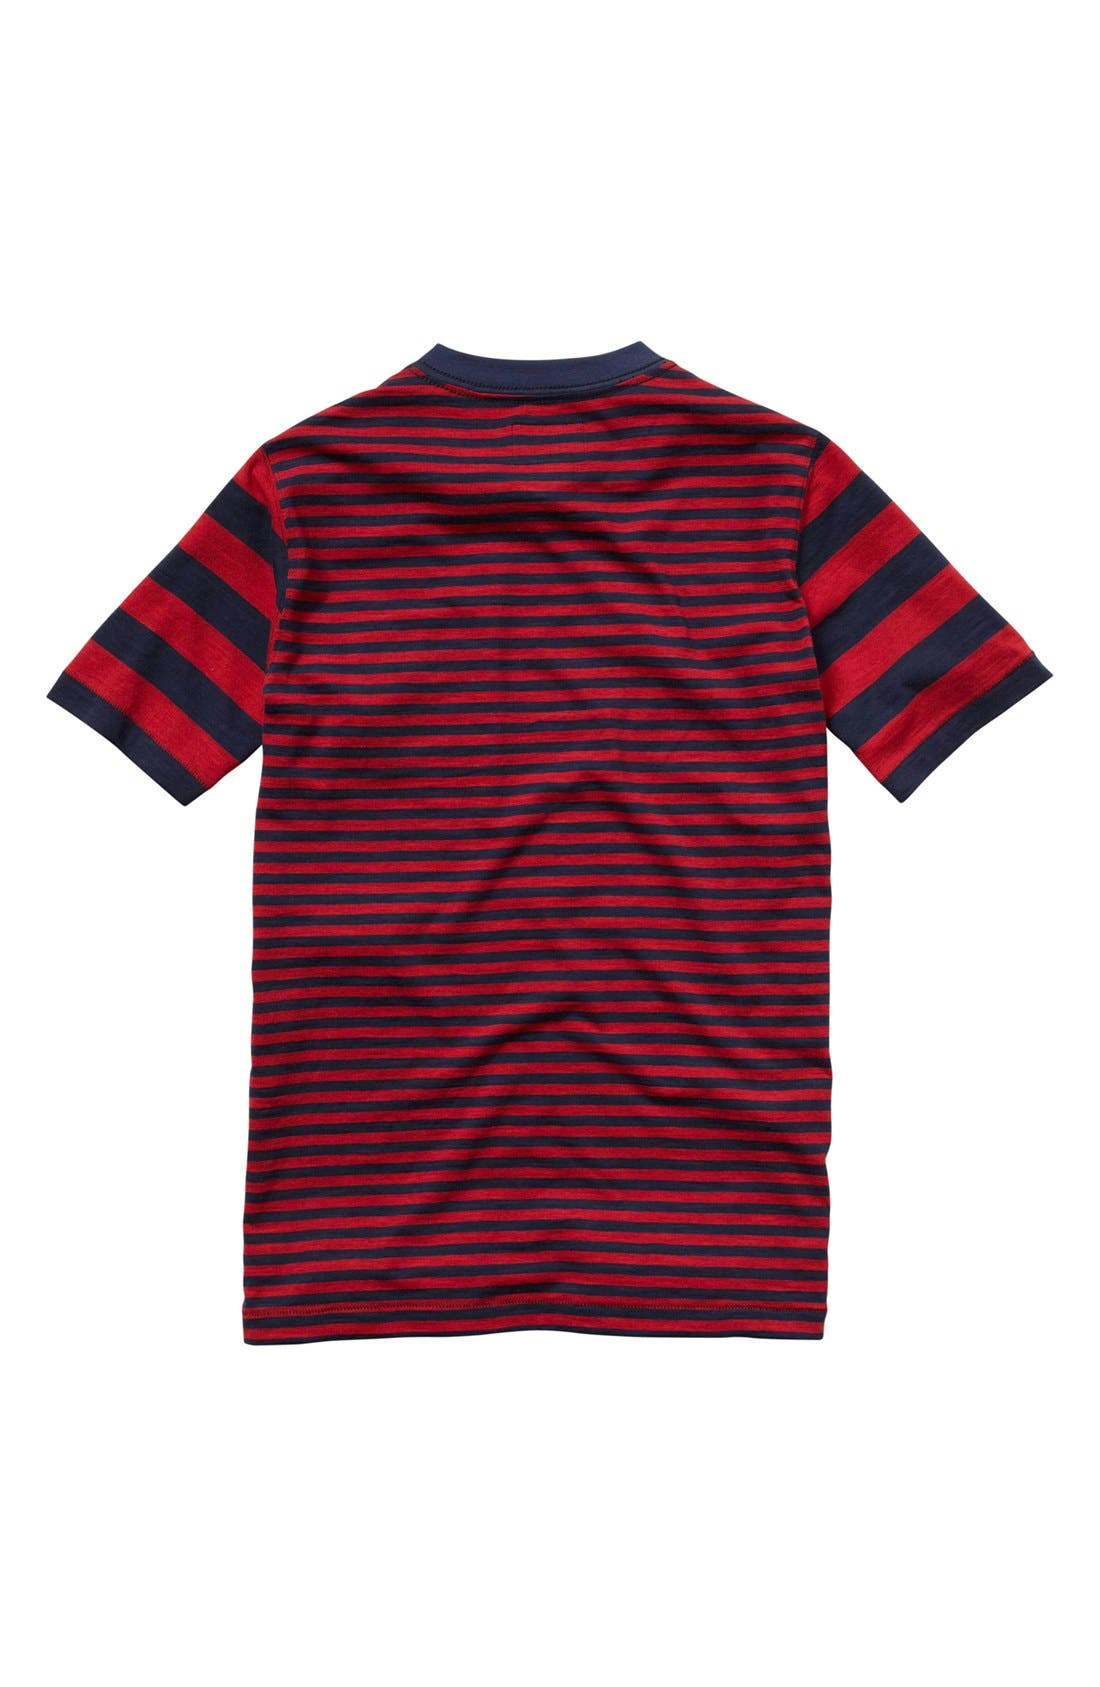 Alternate Image 2  - Quiksilver 'Brody' T-Shirt (Big Boys)